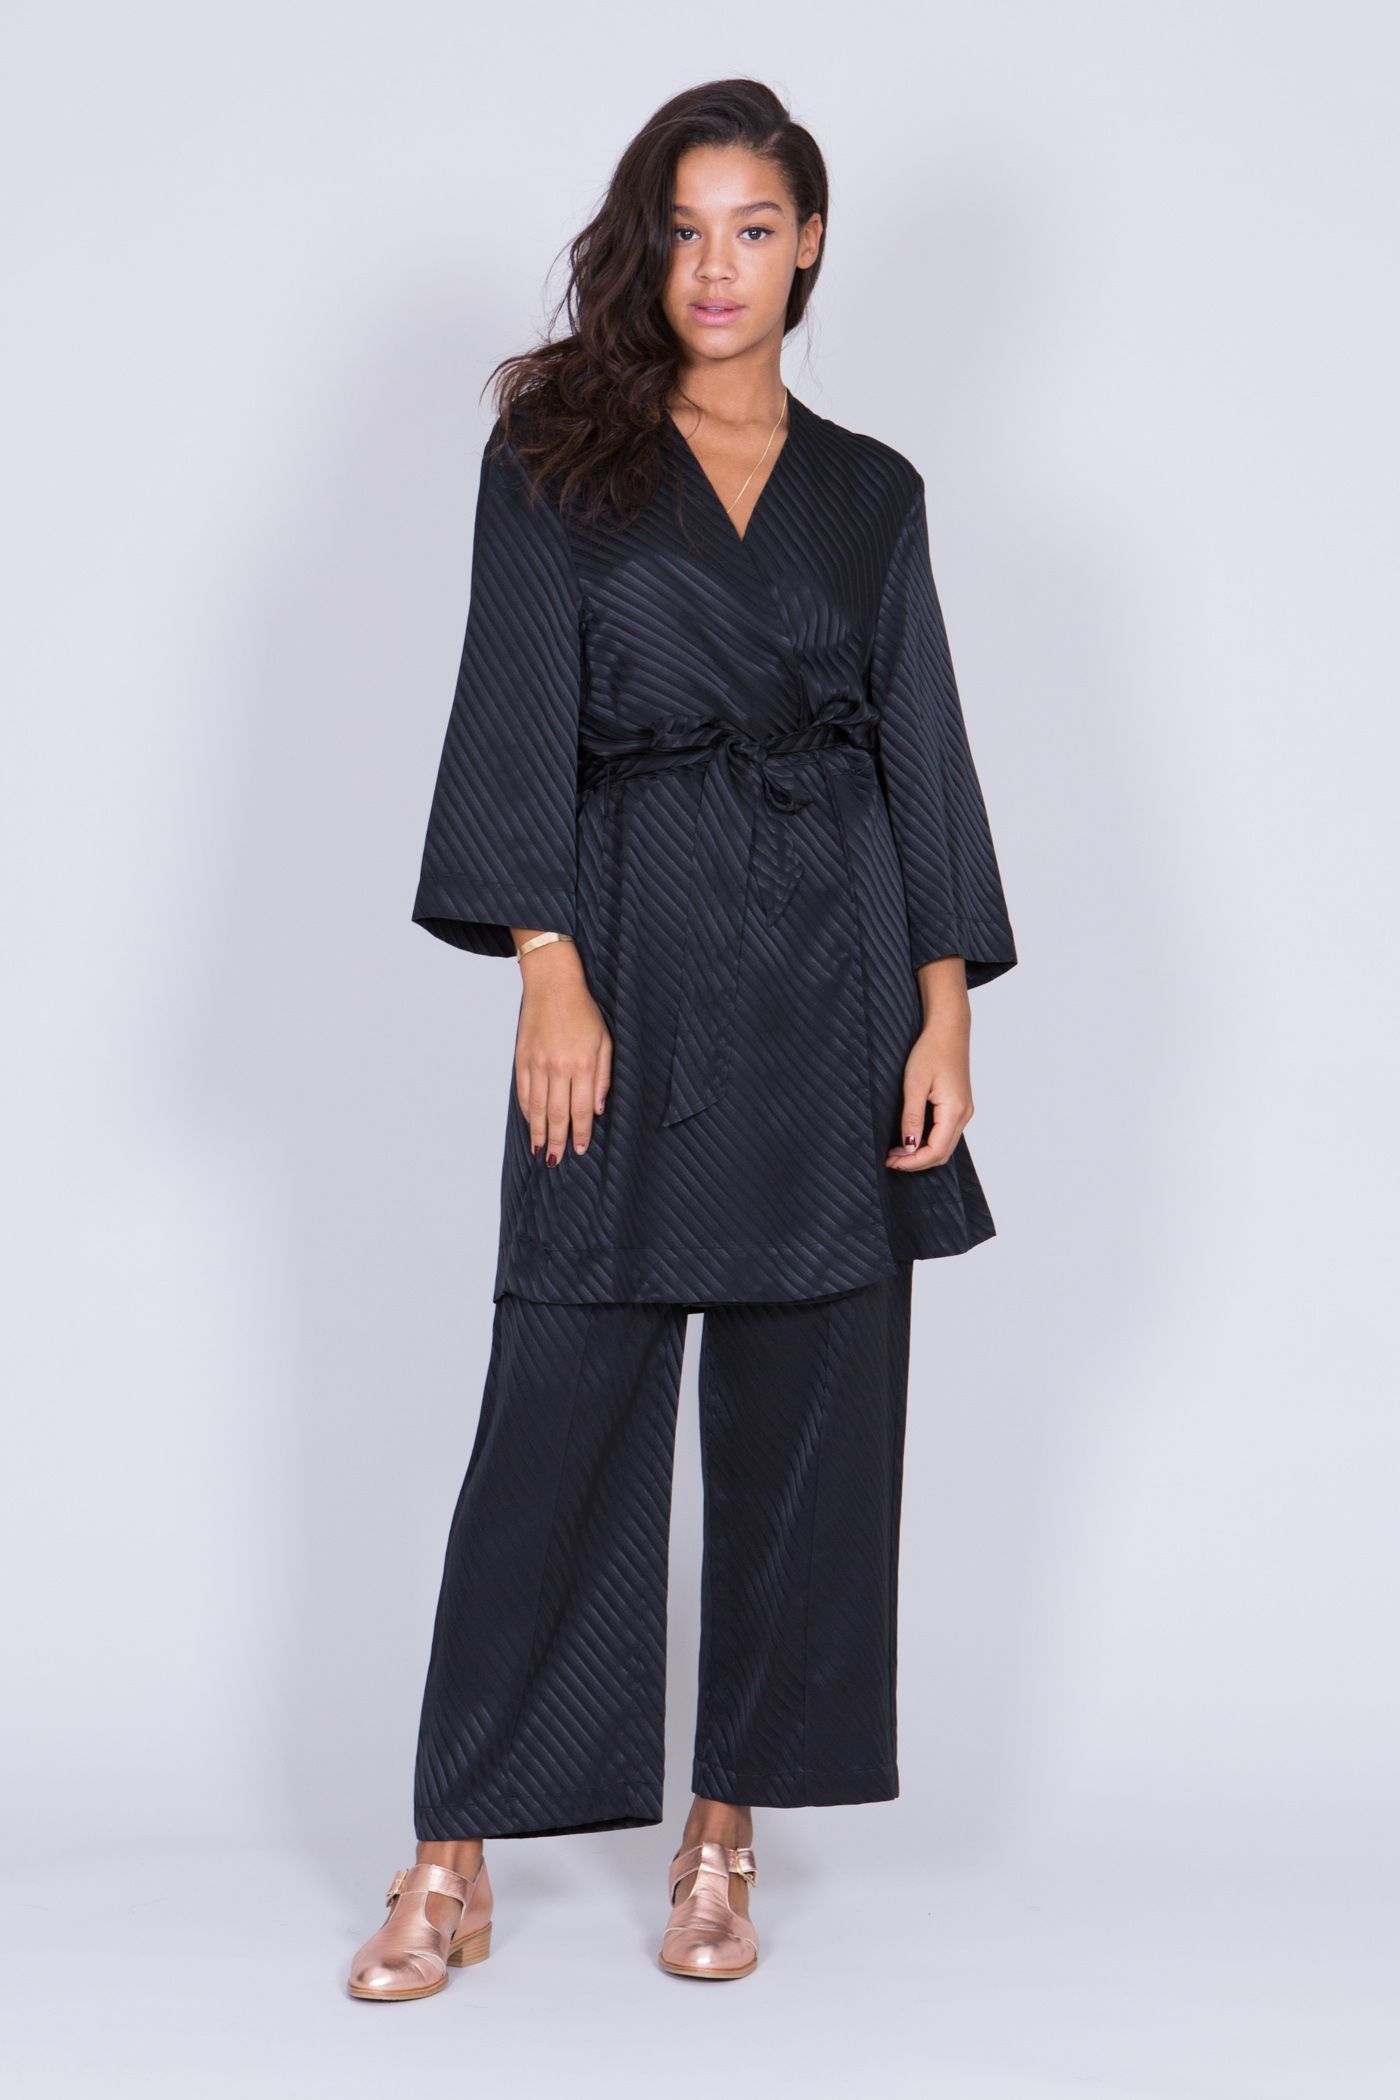 'Garcia' fine silk kimono dress by Danish fashion brand Ganni︱ Cropped, wide sleeves︱ www.grandpa.se︱ Scandinavian fashion and home decor︱ Shipping to Europe and the US